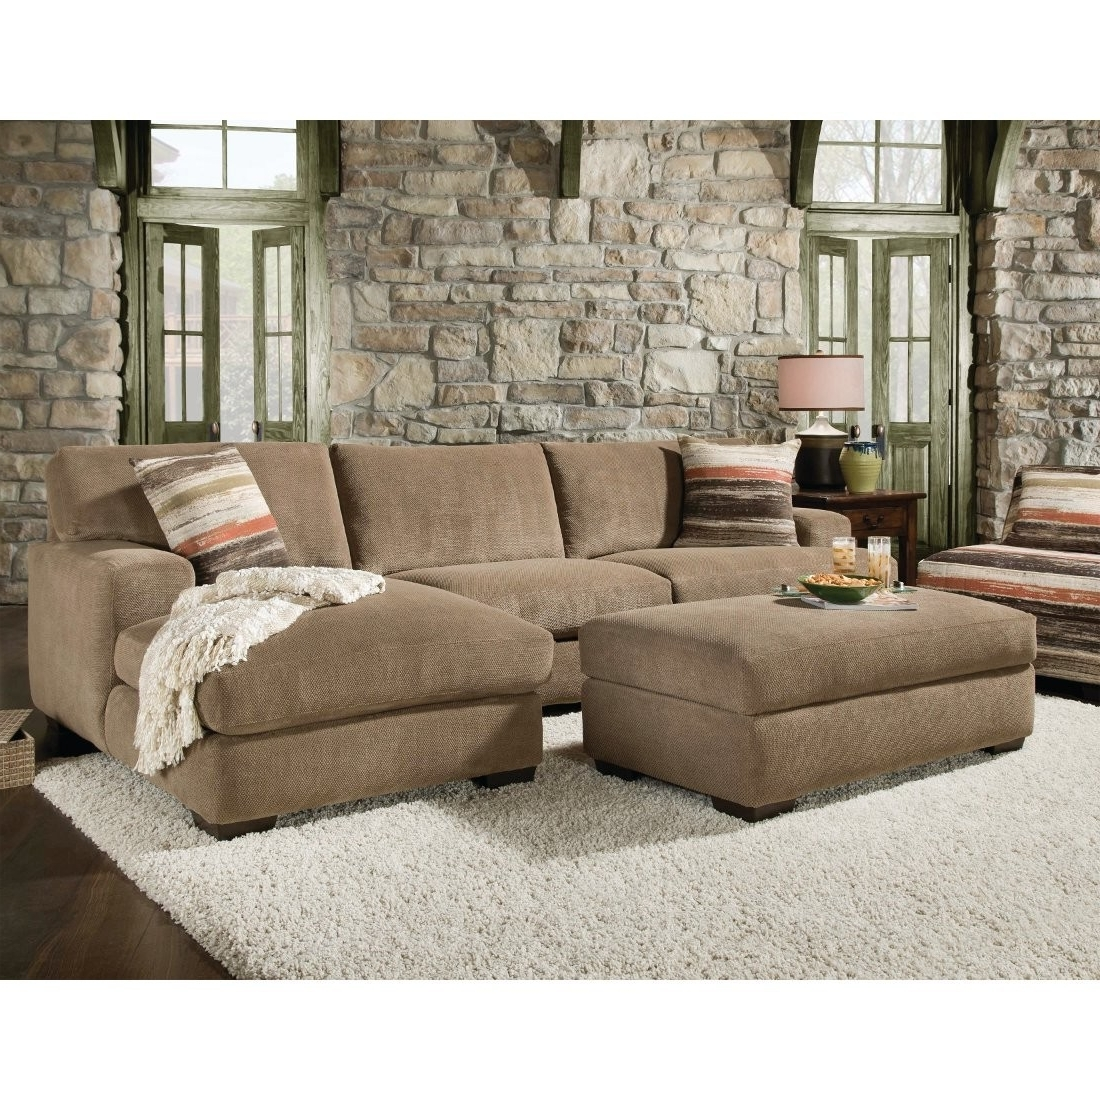 Well Liked Sofa : Extra Large Sectionals With Chaise Deep Sofas Deep Couches Pertaining To Sectional Sofas At Raymour And Flanigan (View 19 of 20)